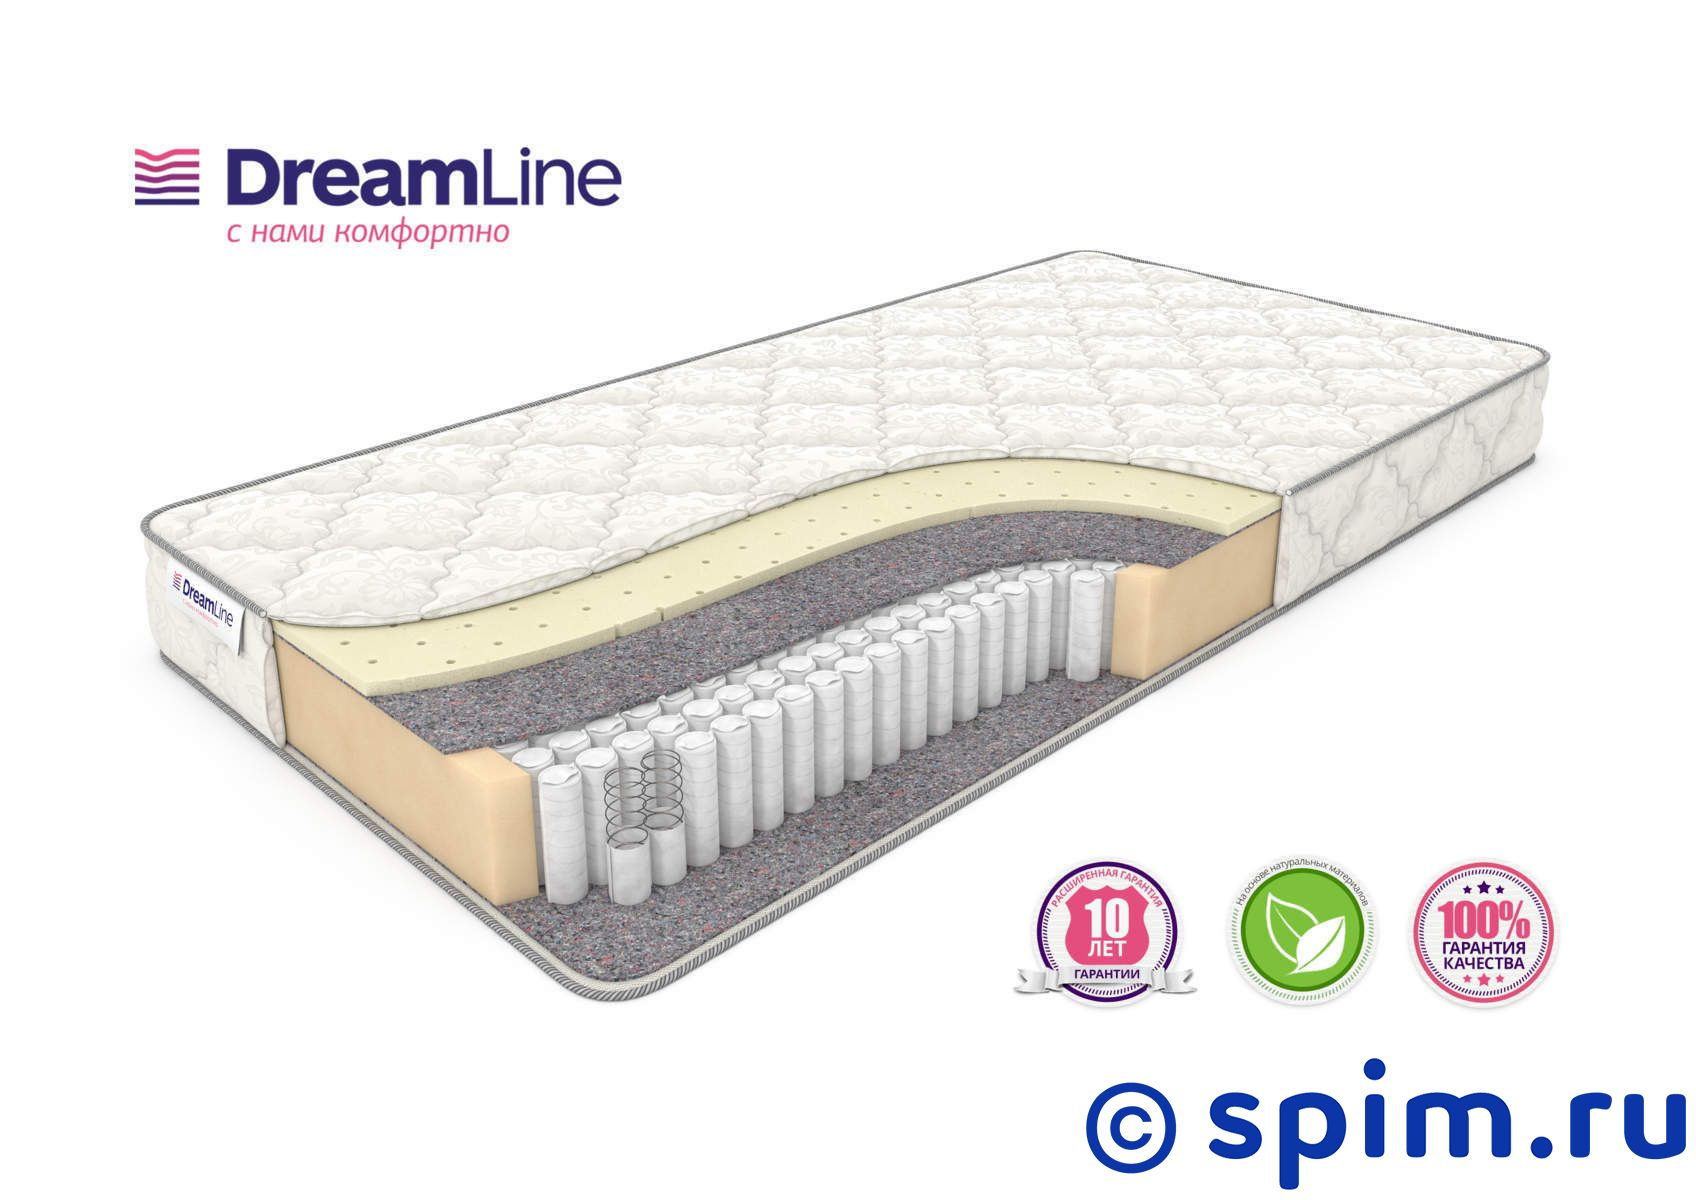 ������ DreamLine Single Sleep 2 S1000 90�200 �� - DreamLine�������/DreamLine/������� DreamLine Single<br>������������� ��������-������ ������ �� ����������� �������� Multipoket S1000 (500 ��/�2), � ���������� �� ������������ �������(2 ��).<br>��������� ����� �� ���������.<br>������: 19 ��.<br>��������: �� 120 ��. ������ �������� ����� ���� 2 �1000: 90 x 200 ��<br><br>���: ���������<br>������� �������: ���� ������� �������<br>��������� 1 �������: ������<br>������ 1 �������: ������<br>���-�� ��� ���������: 0<br>��� ������: �����������<br>������ �� ��.�: 500<br>������������ ��� �� �������� ����� ��: 120<br>������ ��: 18<br>��� �����: ��������<br>������ �� �����: ���<br>����/����: ���<br>��������� ��������: ���<br>�������: ���<br>������ �������������: ������<br>������: ������ DreamLine Single Sleep 2 S1000 90�200 �� �������� ����� ���� 2 �1000<br>������ ��: 90<br>����� ��: 200<br>�������: Single